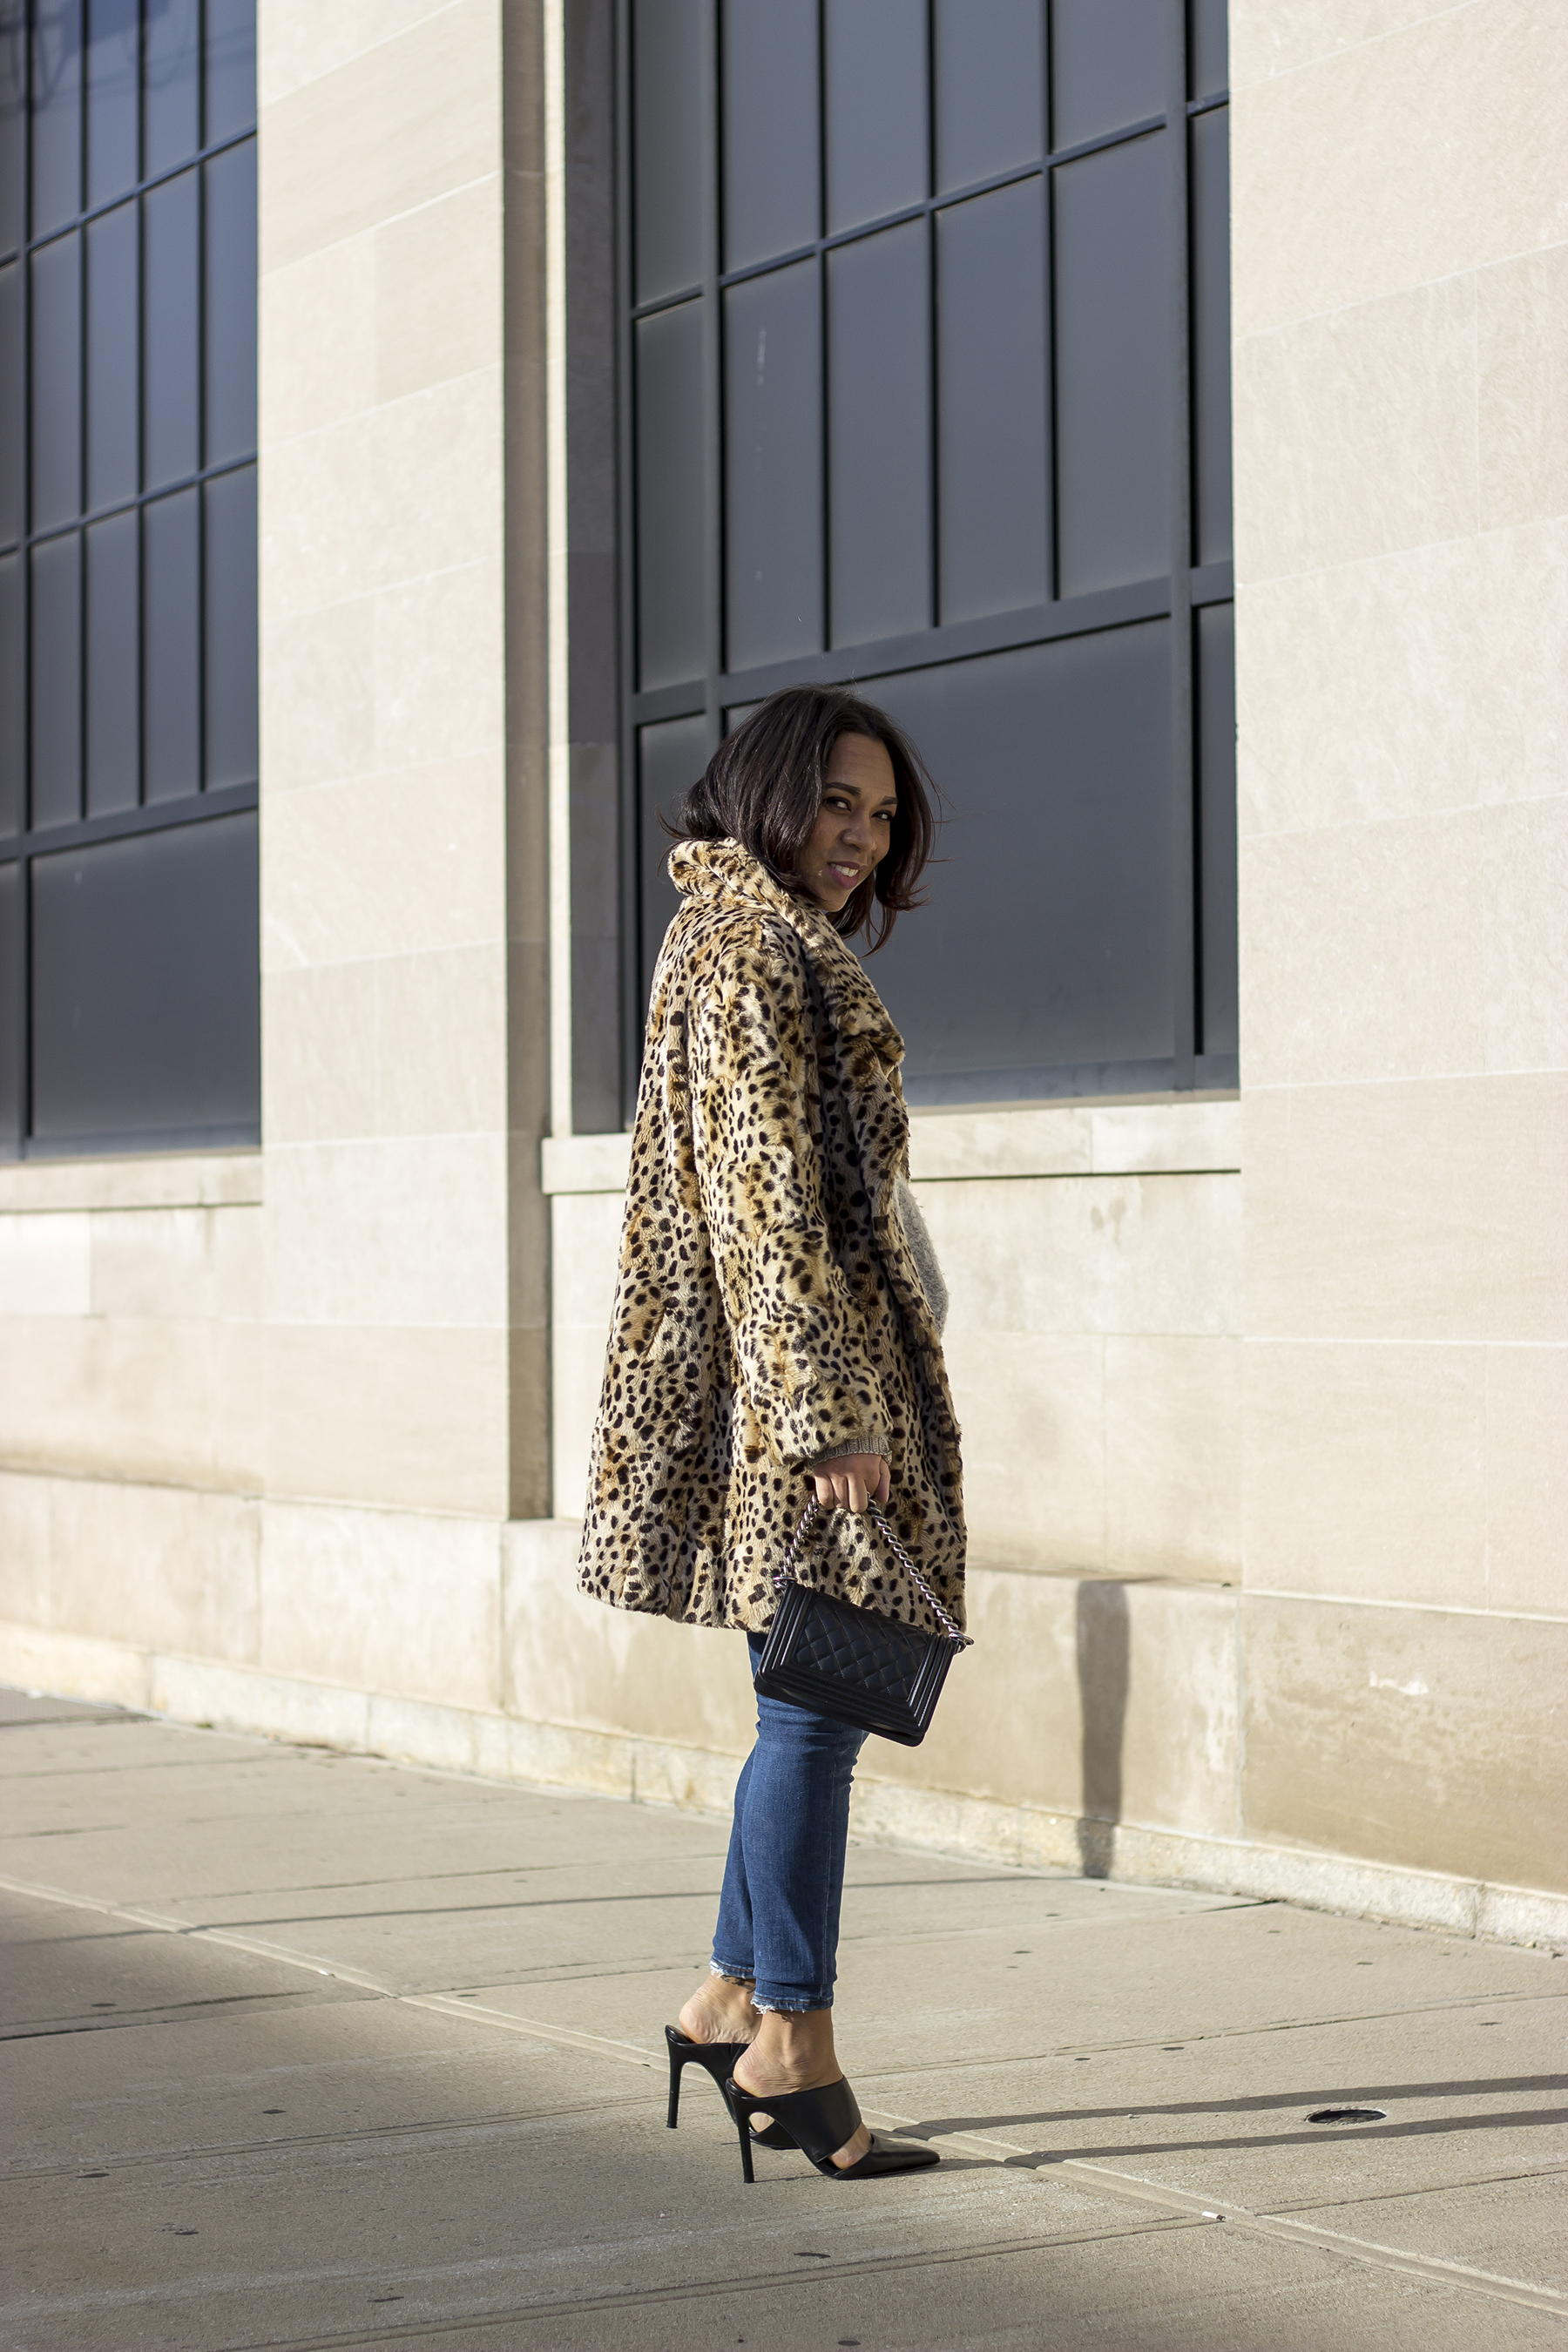 leopard print, leopard print coat, leopard faux fur jacket, leopard faux fur coat, shein leopard print jacket, shein leopard print coat, leopard print  faux fur under 40, thewaytomyhart, the way to my hart, Jessica Hart, style blogger, winter style, faux fur style